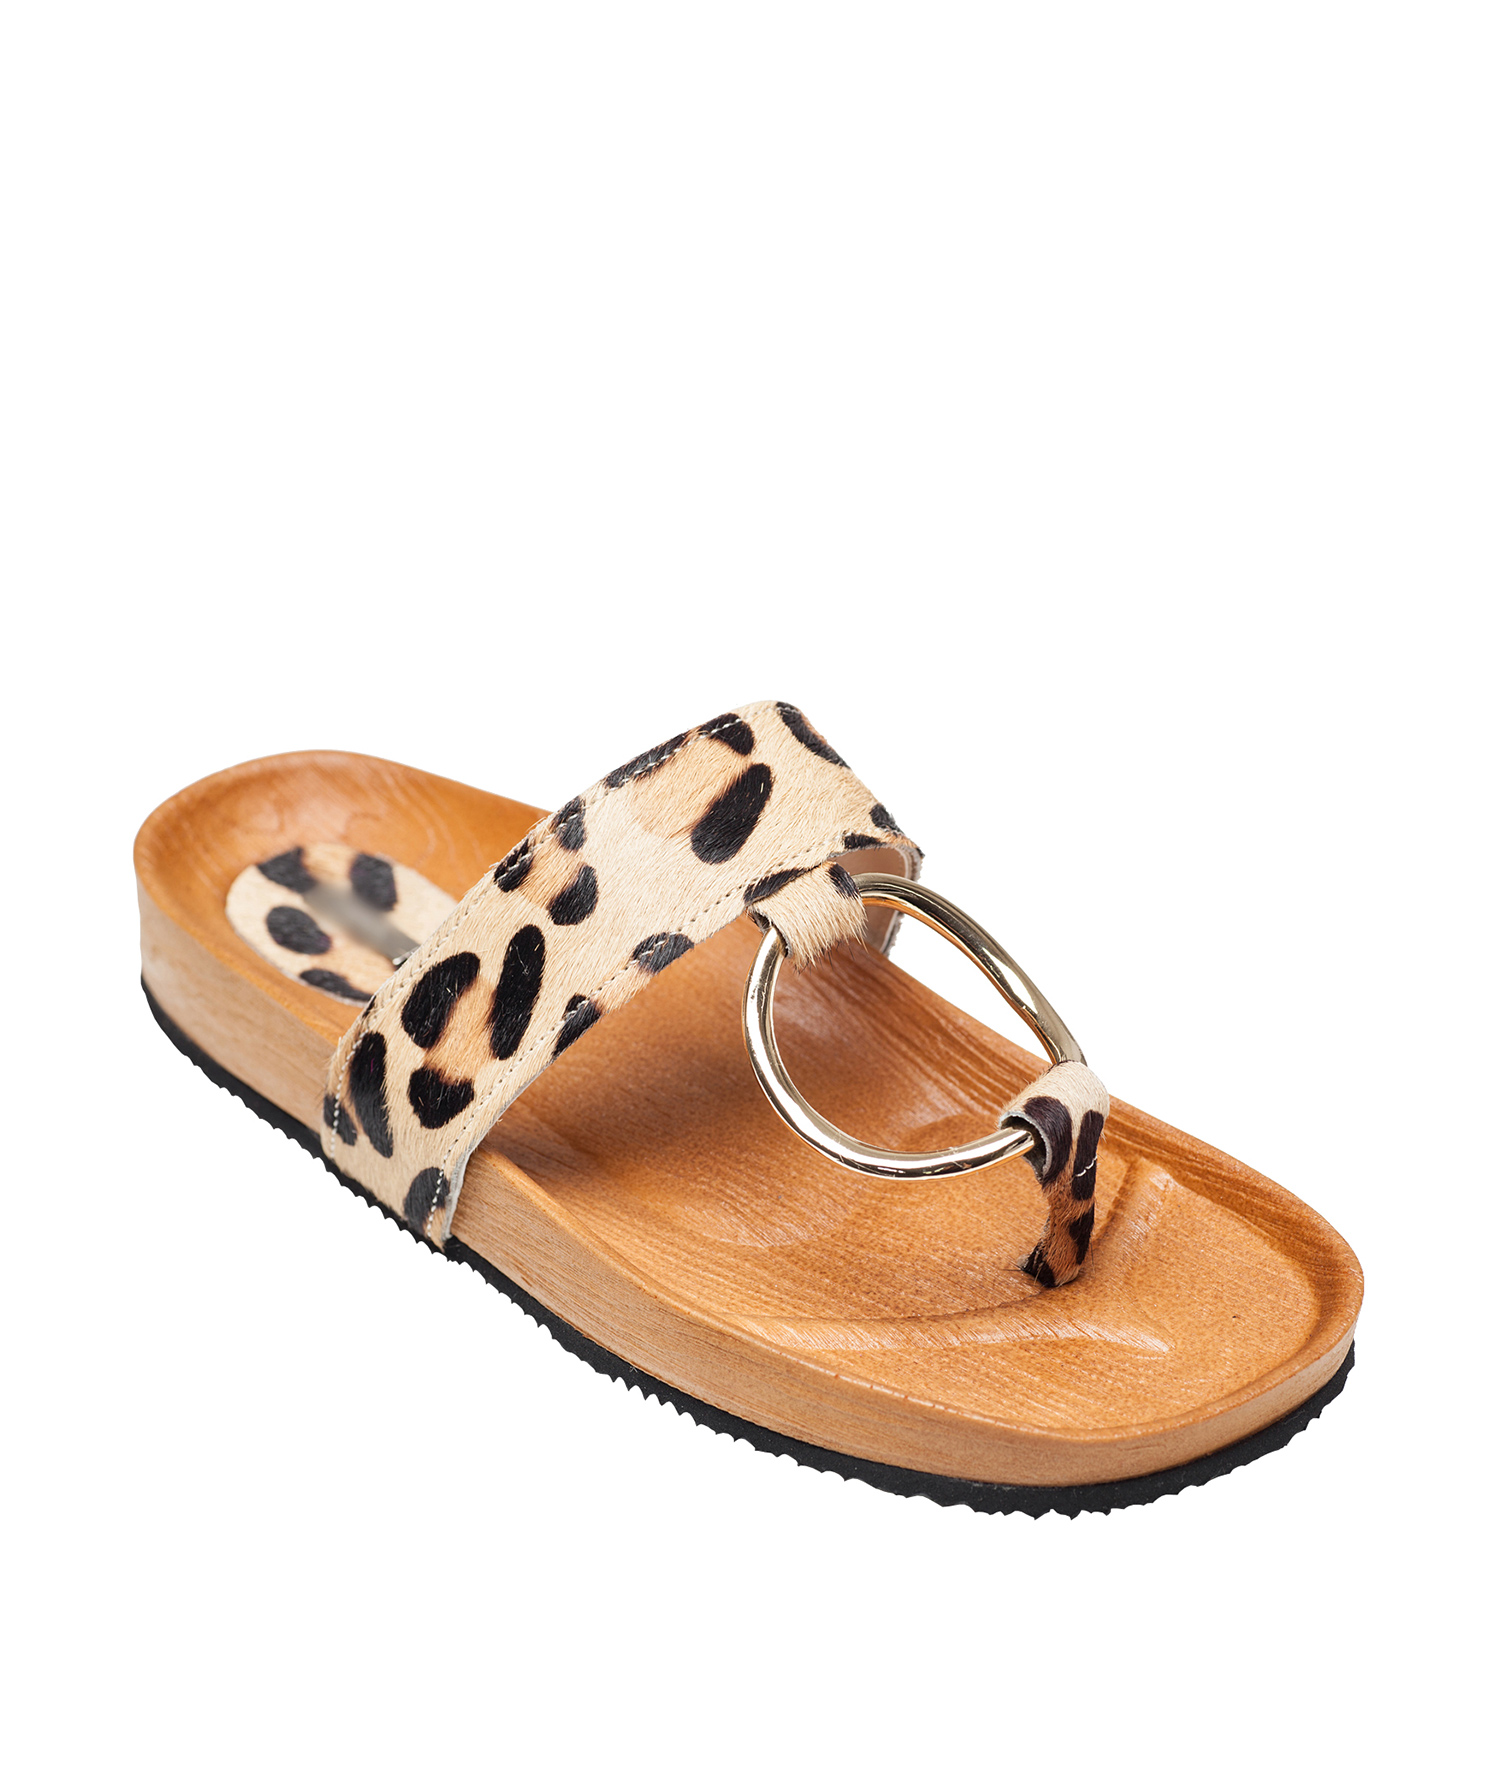 8faf305e840 AnnaKastle Womens Calf Hair Ring Thong Sandal Slide Flip Flops Leopard